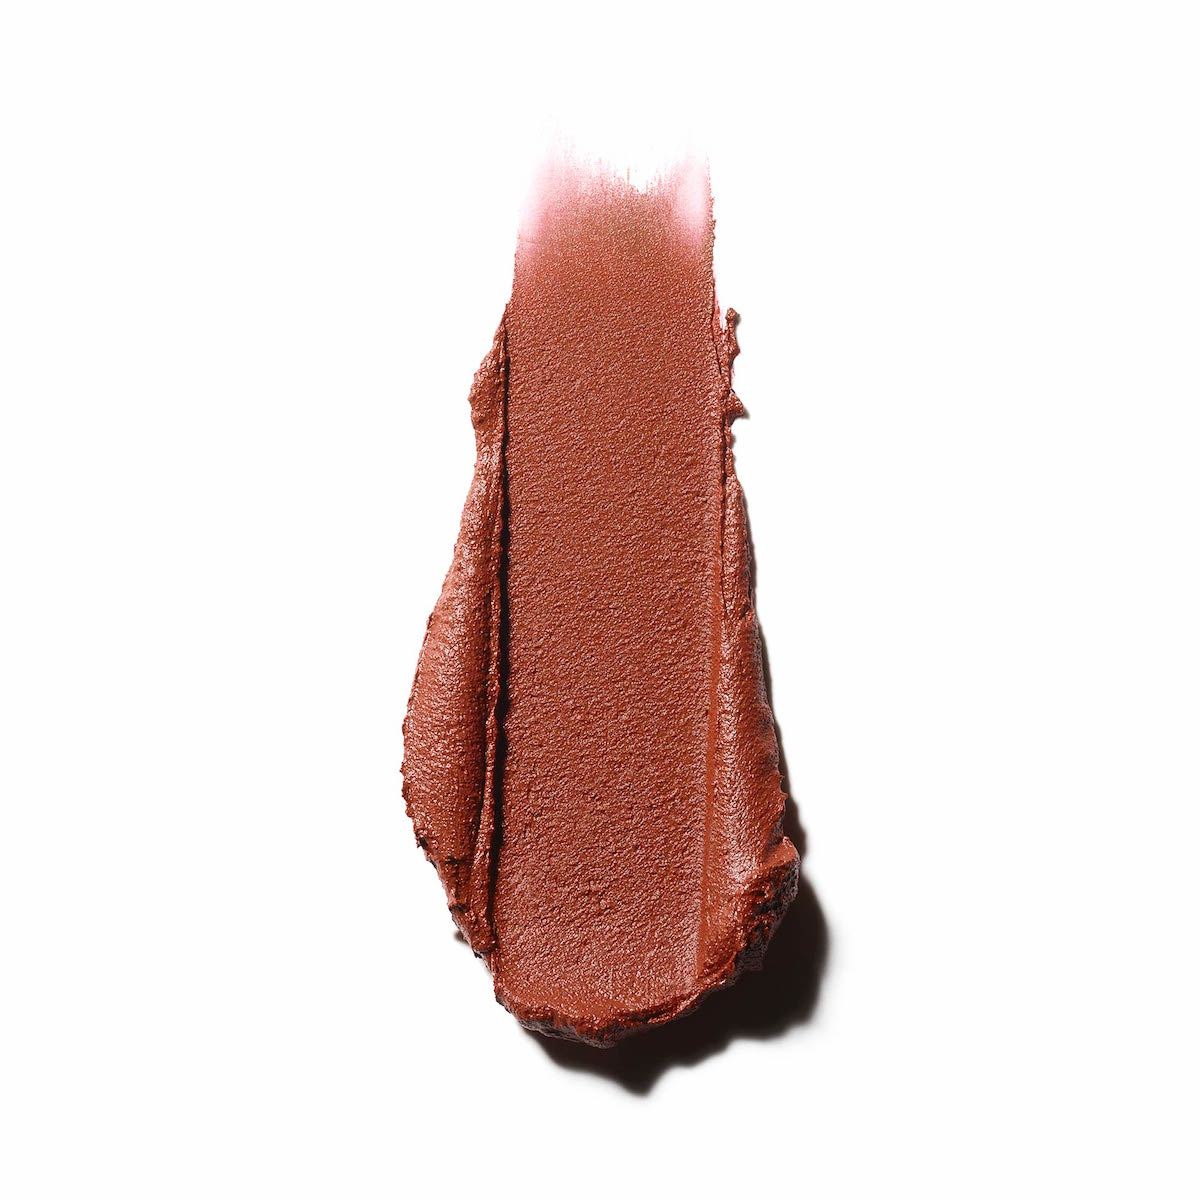 POWDER KISS LIPSTICK (LABIAL)